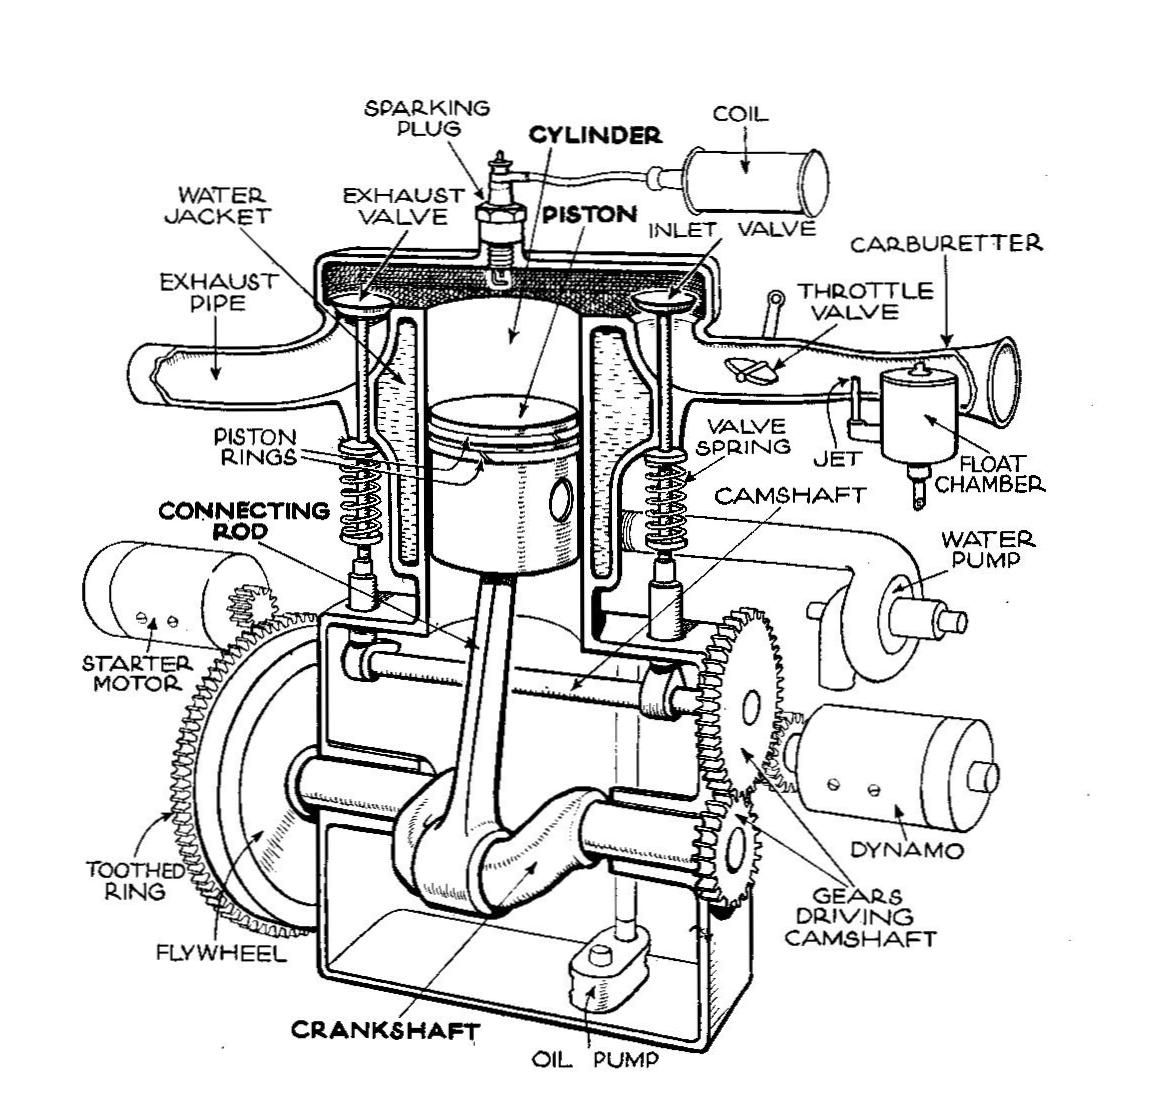 WRG-0704] Engine Head Diagram on